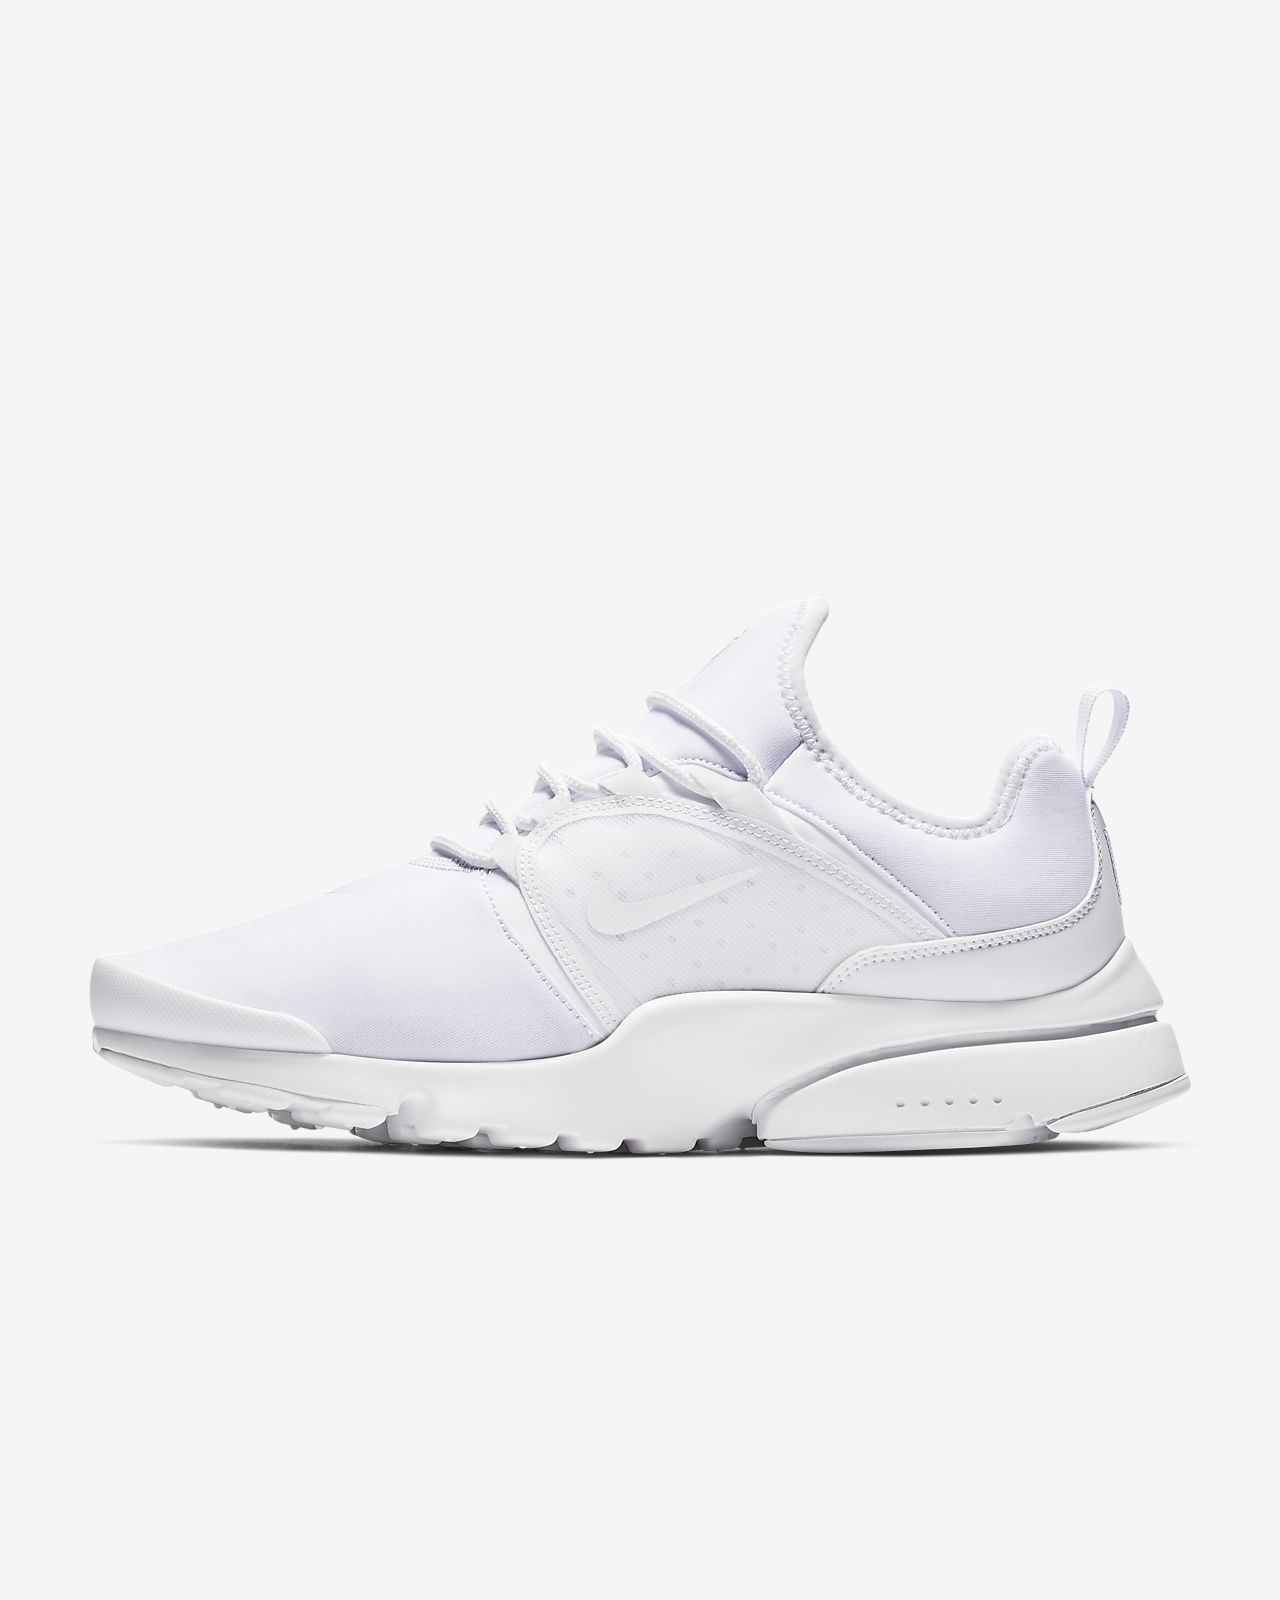 best website 1f554 729c3 Nike Presto Fly World